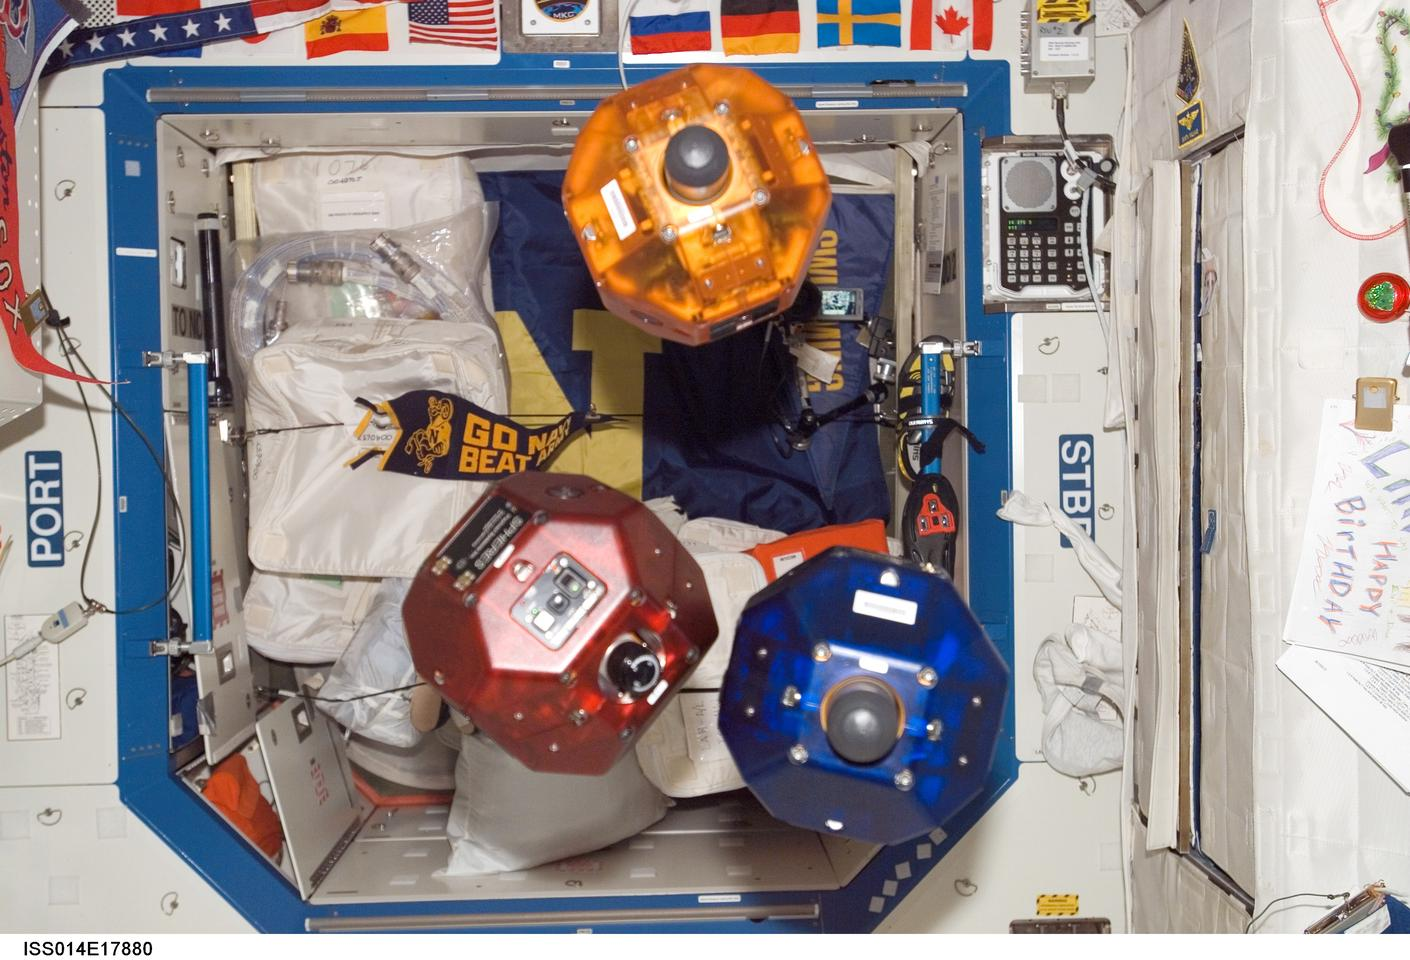 Three free-flying, bowling ball-sized robots aboard the ISS will use a 3D map to provide situational awareness to crew members and flight controllers in real time (Photo: NASA)